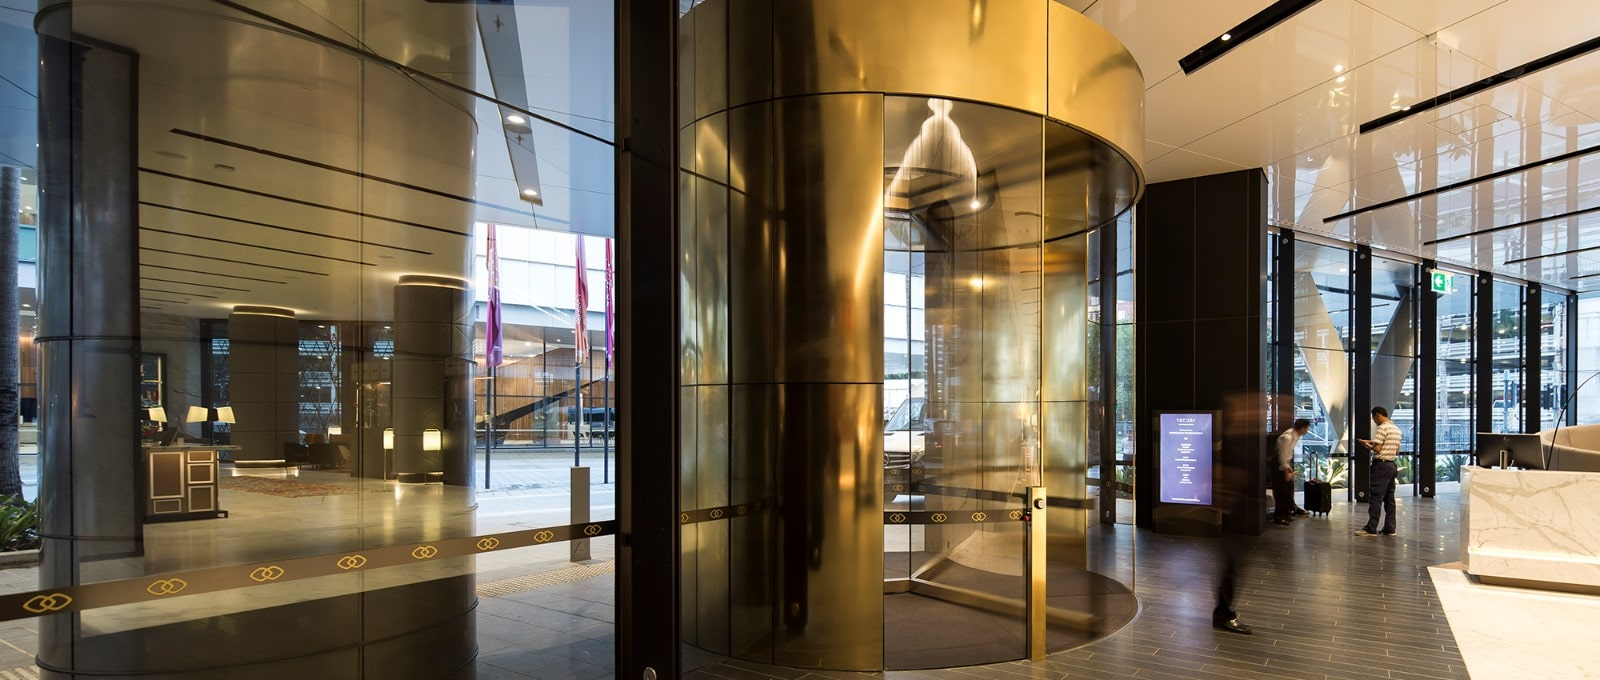 Commercial revolving door option.